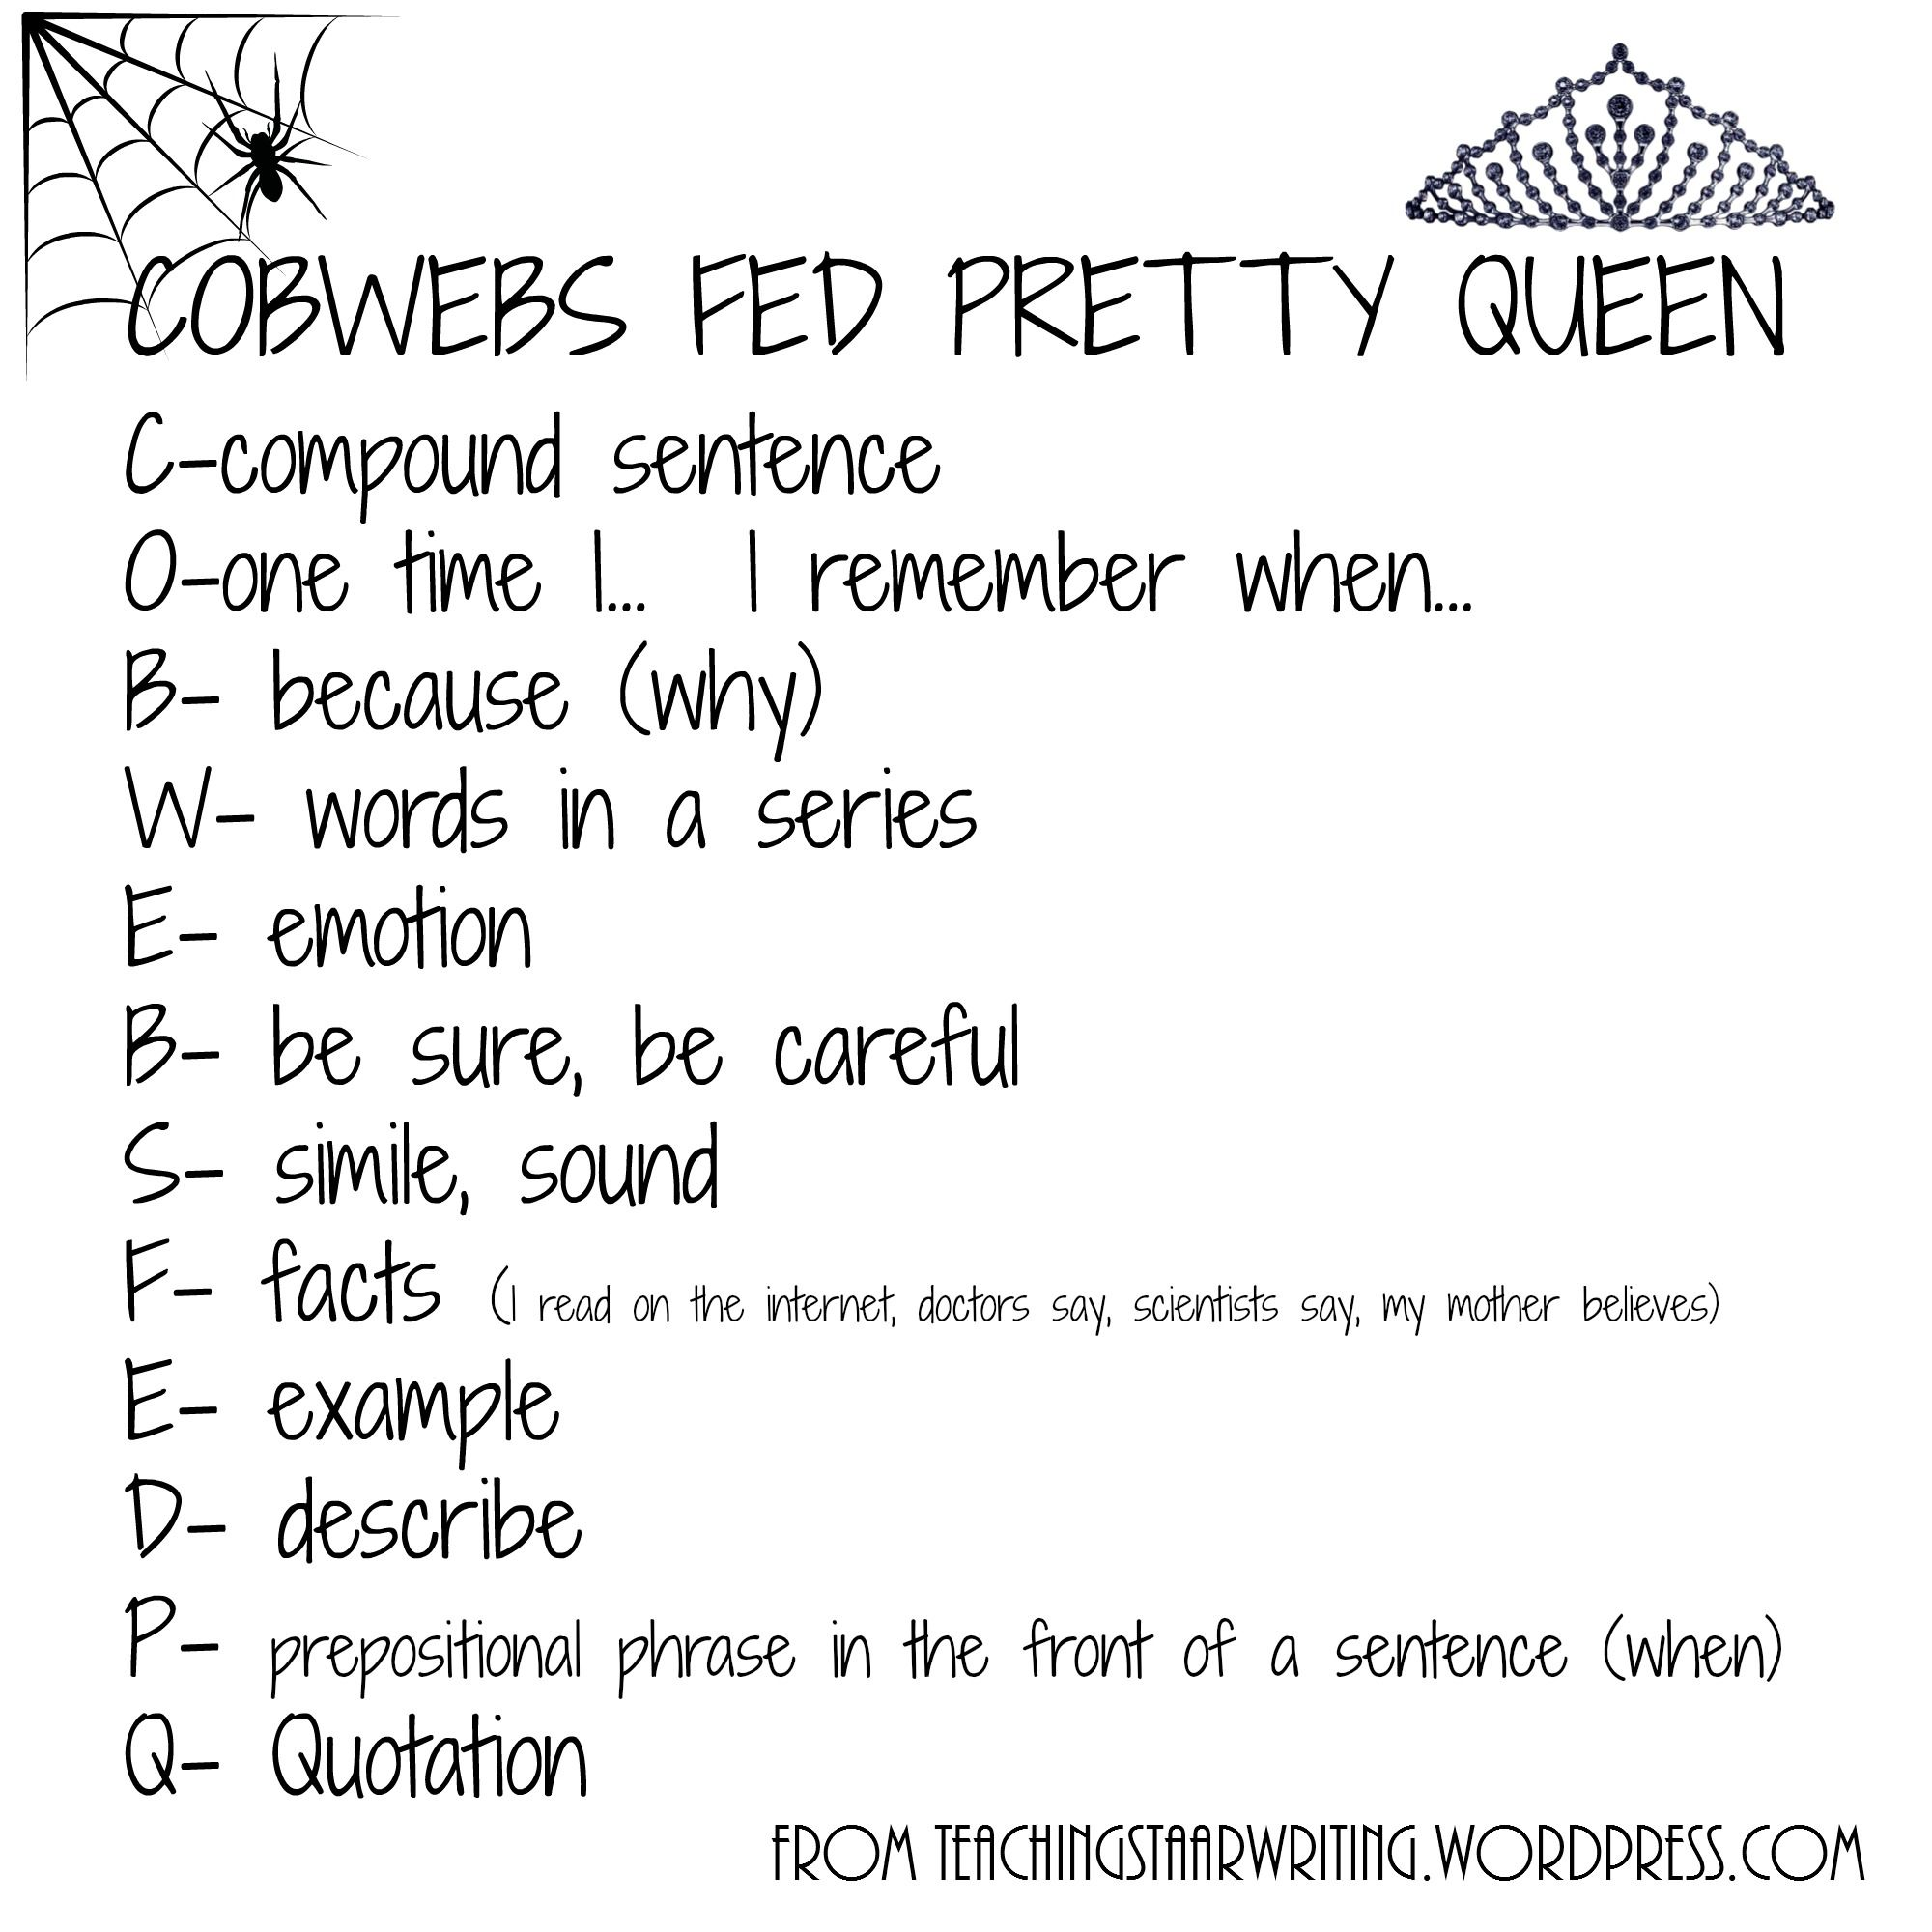 Expository Checklist Cobwebs Fed Pretty Queen